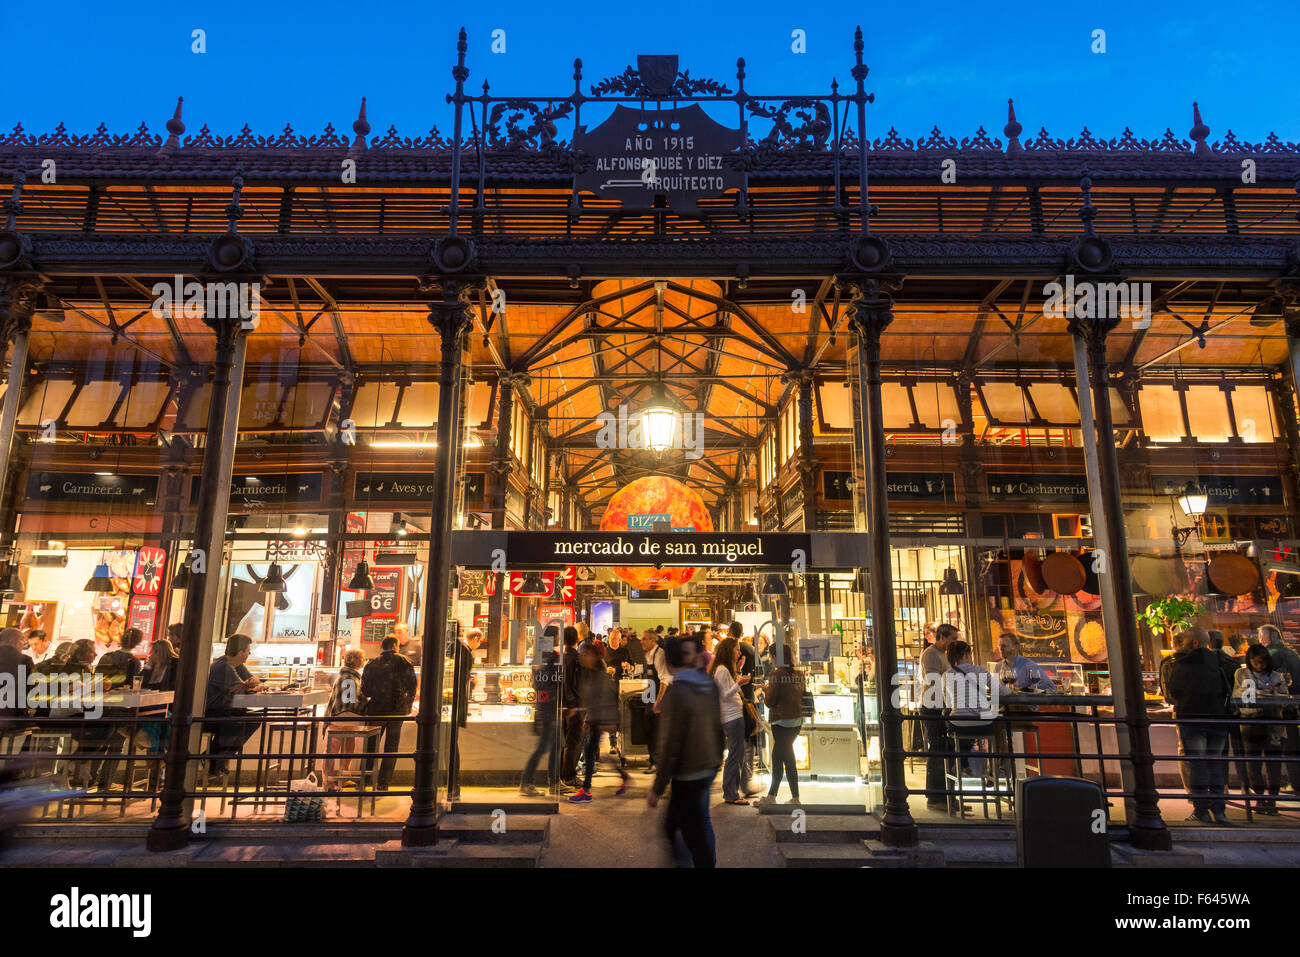 Early evening at The Mercado de San Miguel, just off of the Plaza Stock Photo...